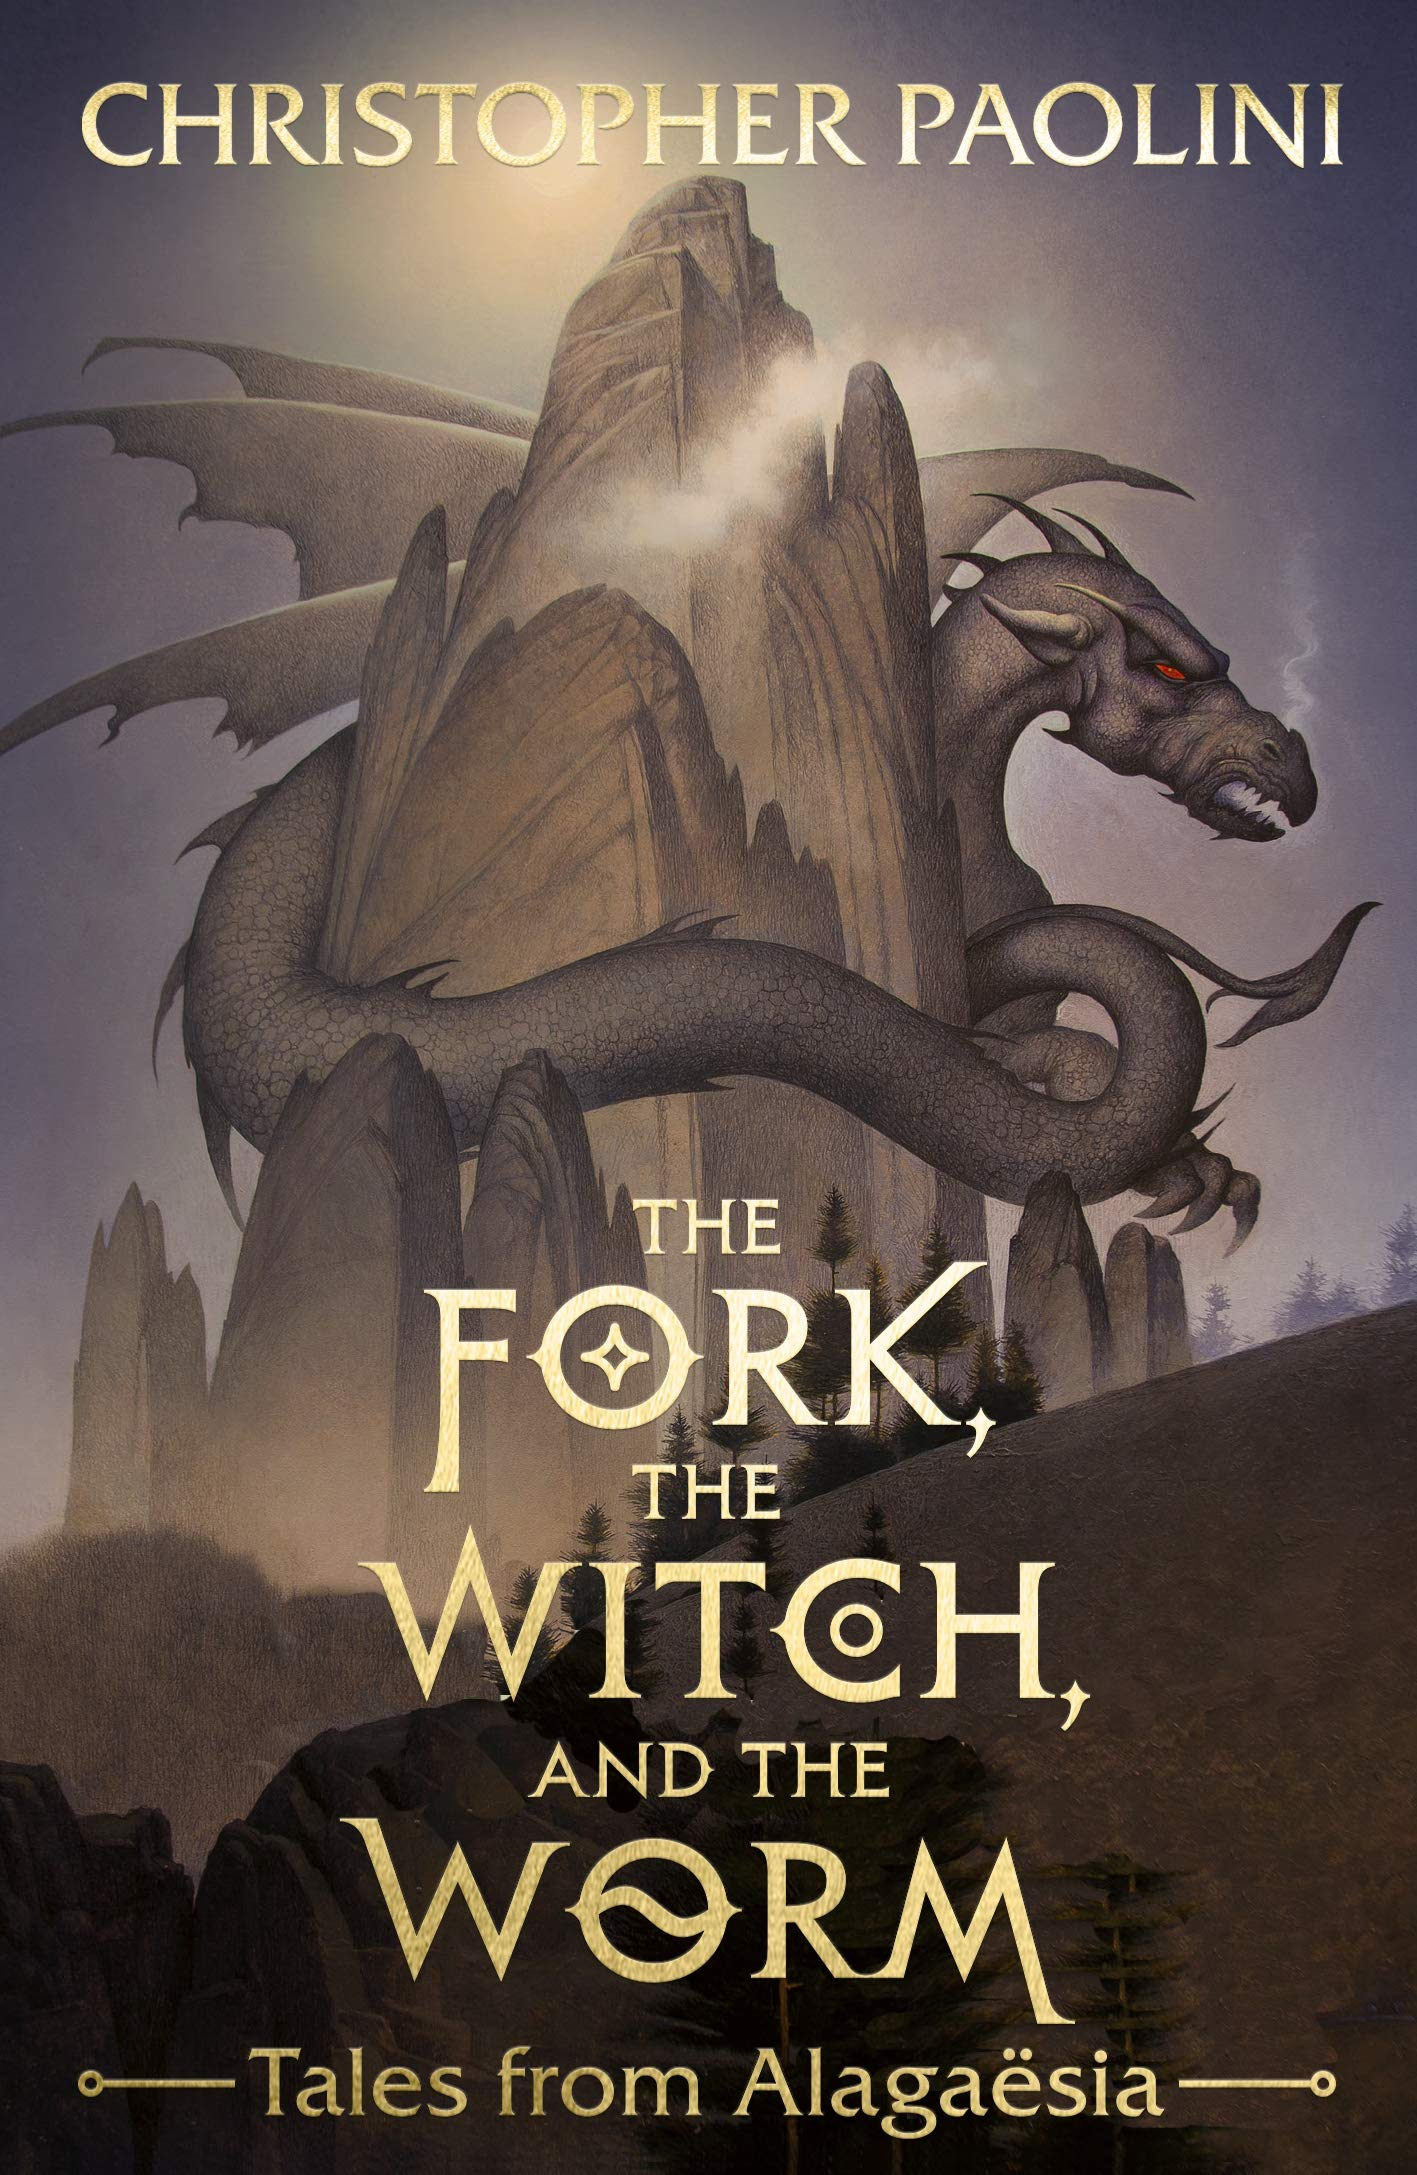 The Fork, the Witch, and the Worm : Tales from Alagaesia